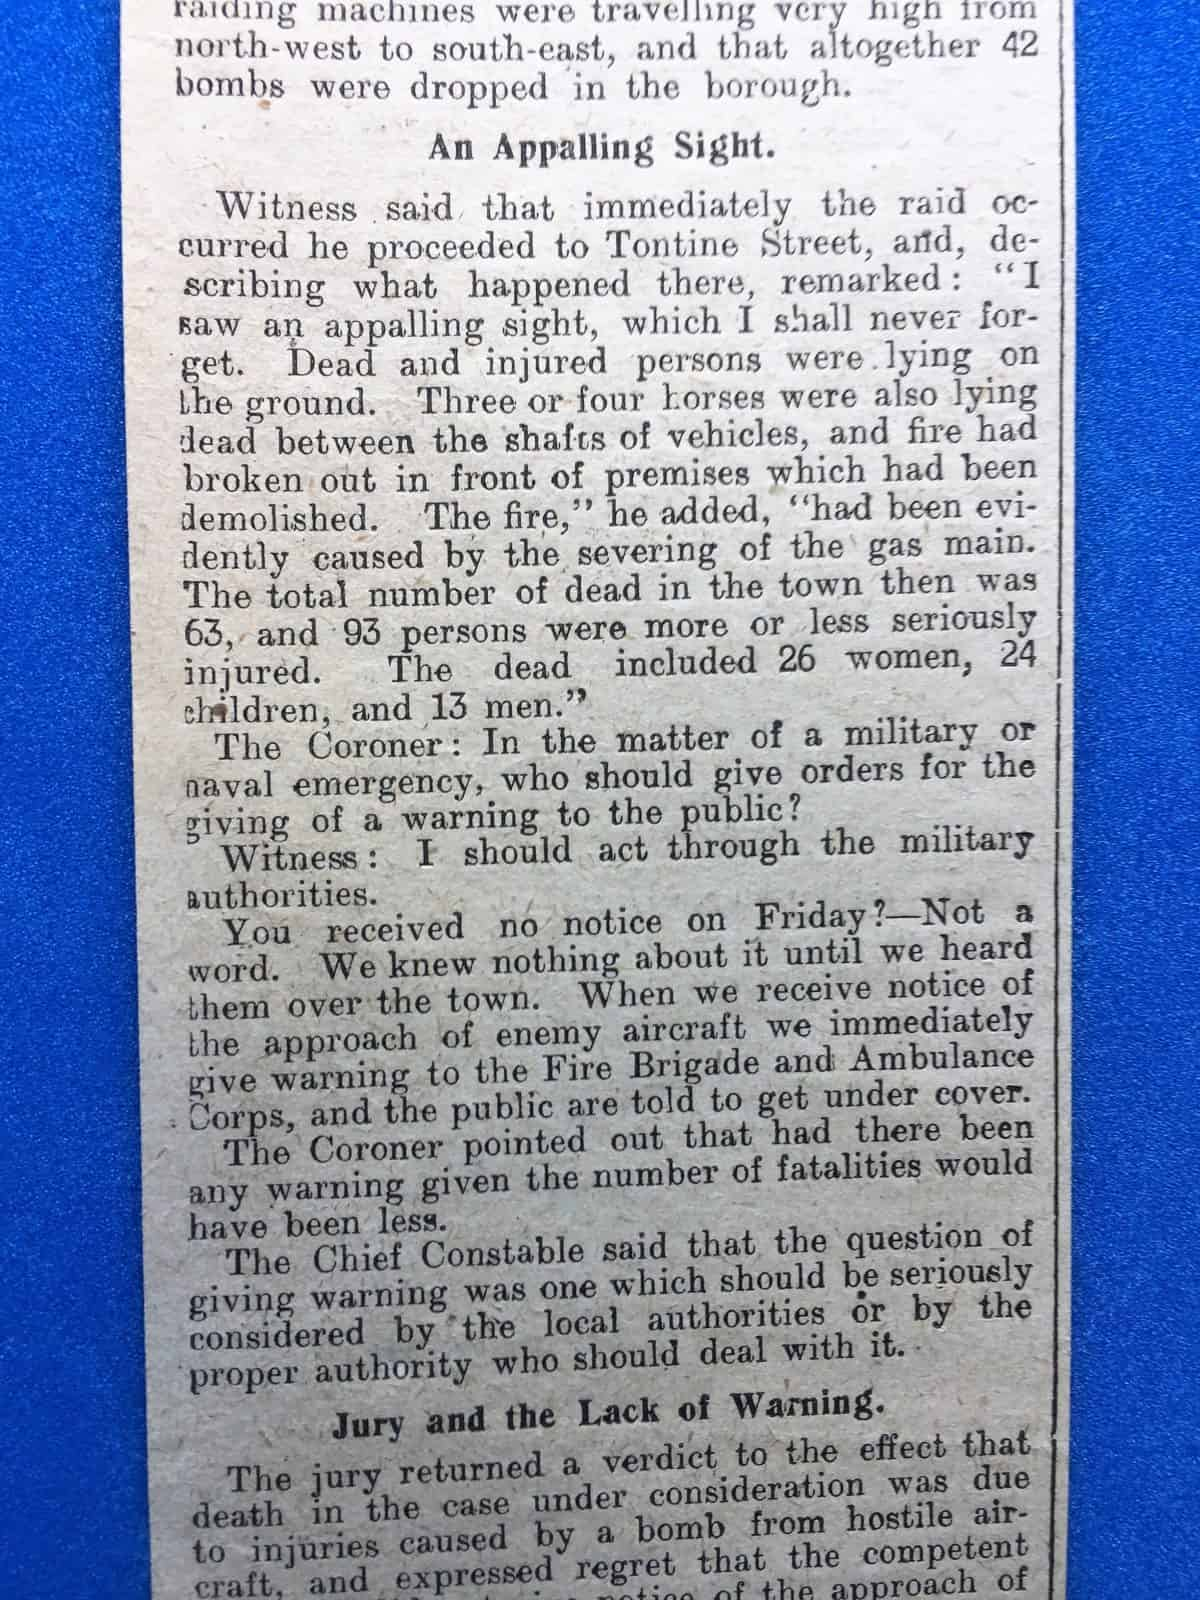 WW1 5 Tontine Street air raid newspaper article 2